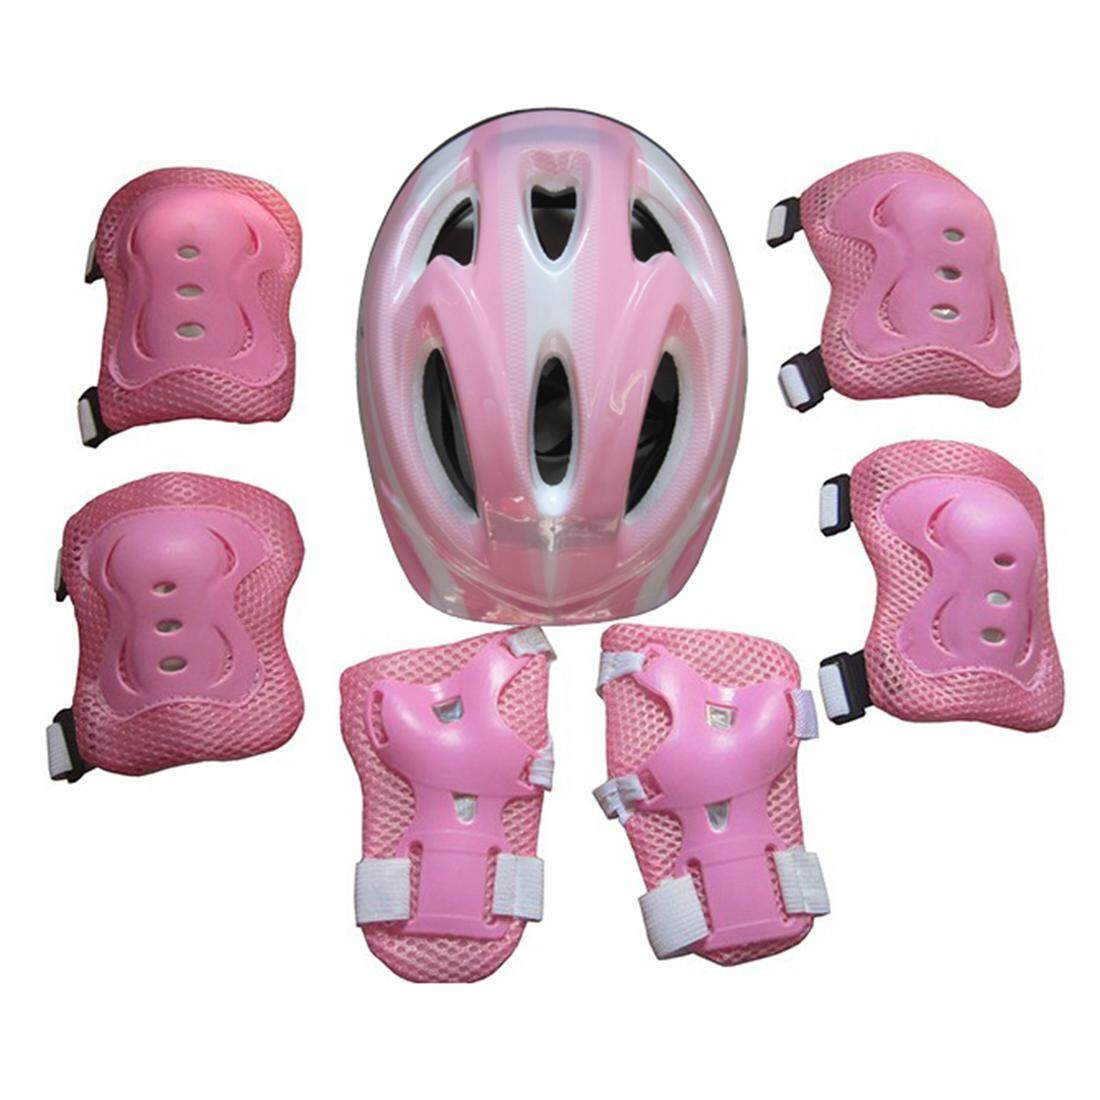 Giá bán 360WISH 7Pcs Ice Skates Protective Gear Helmet Set for 5-11 Year-old Children - Pink